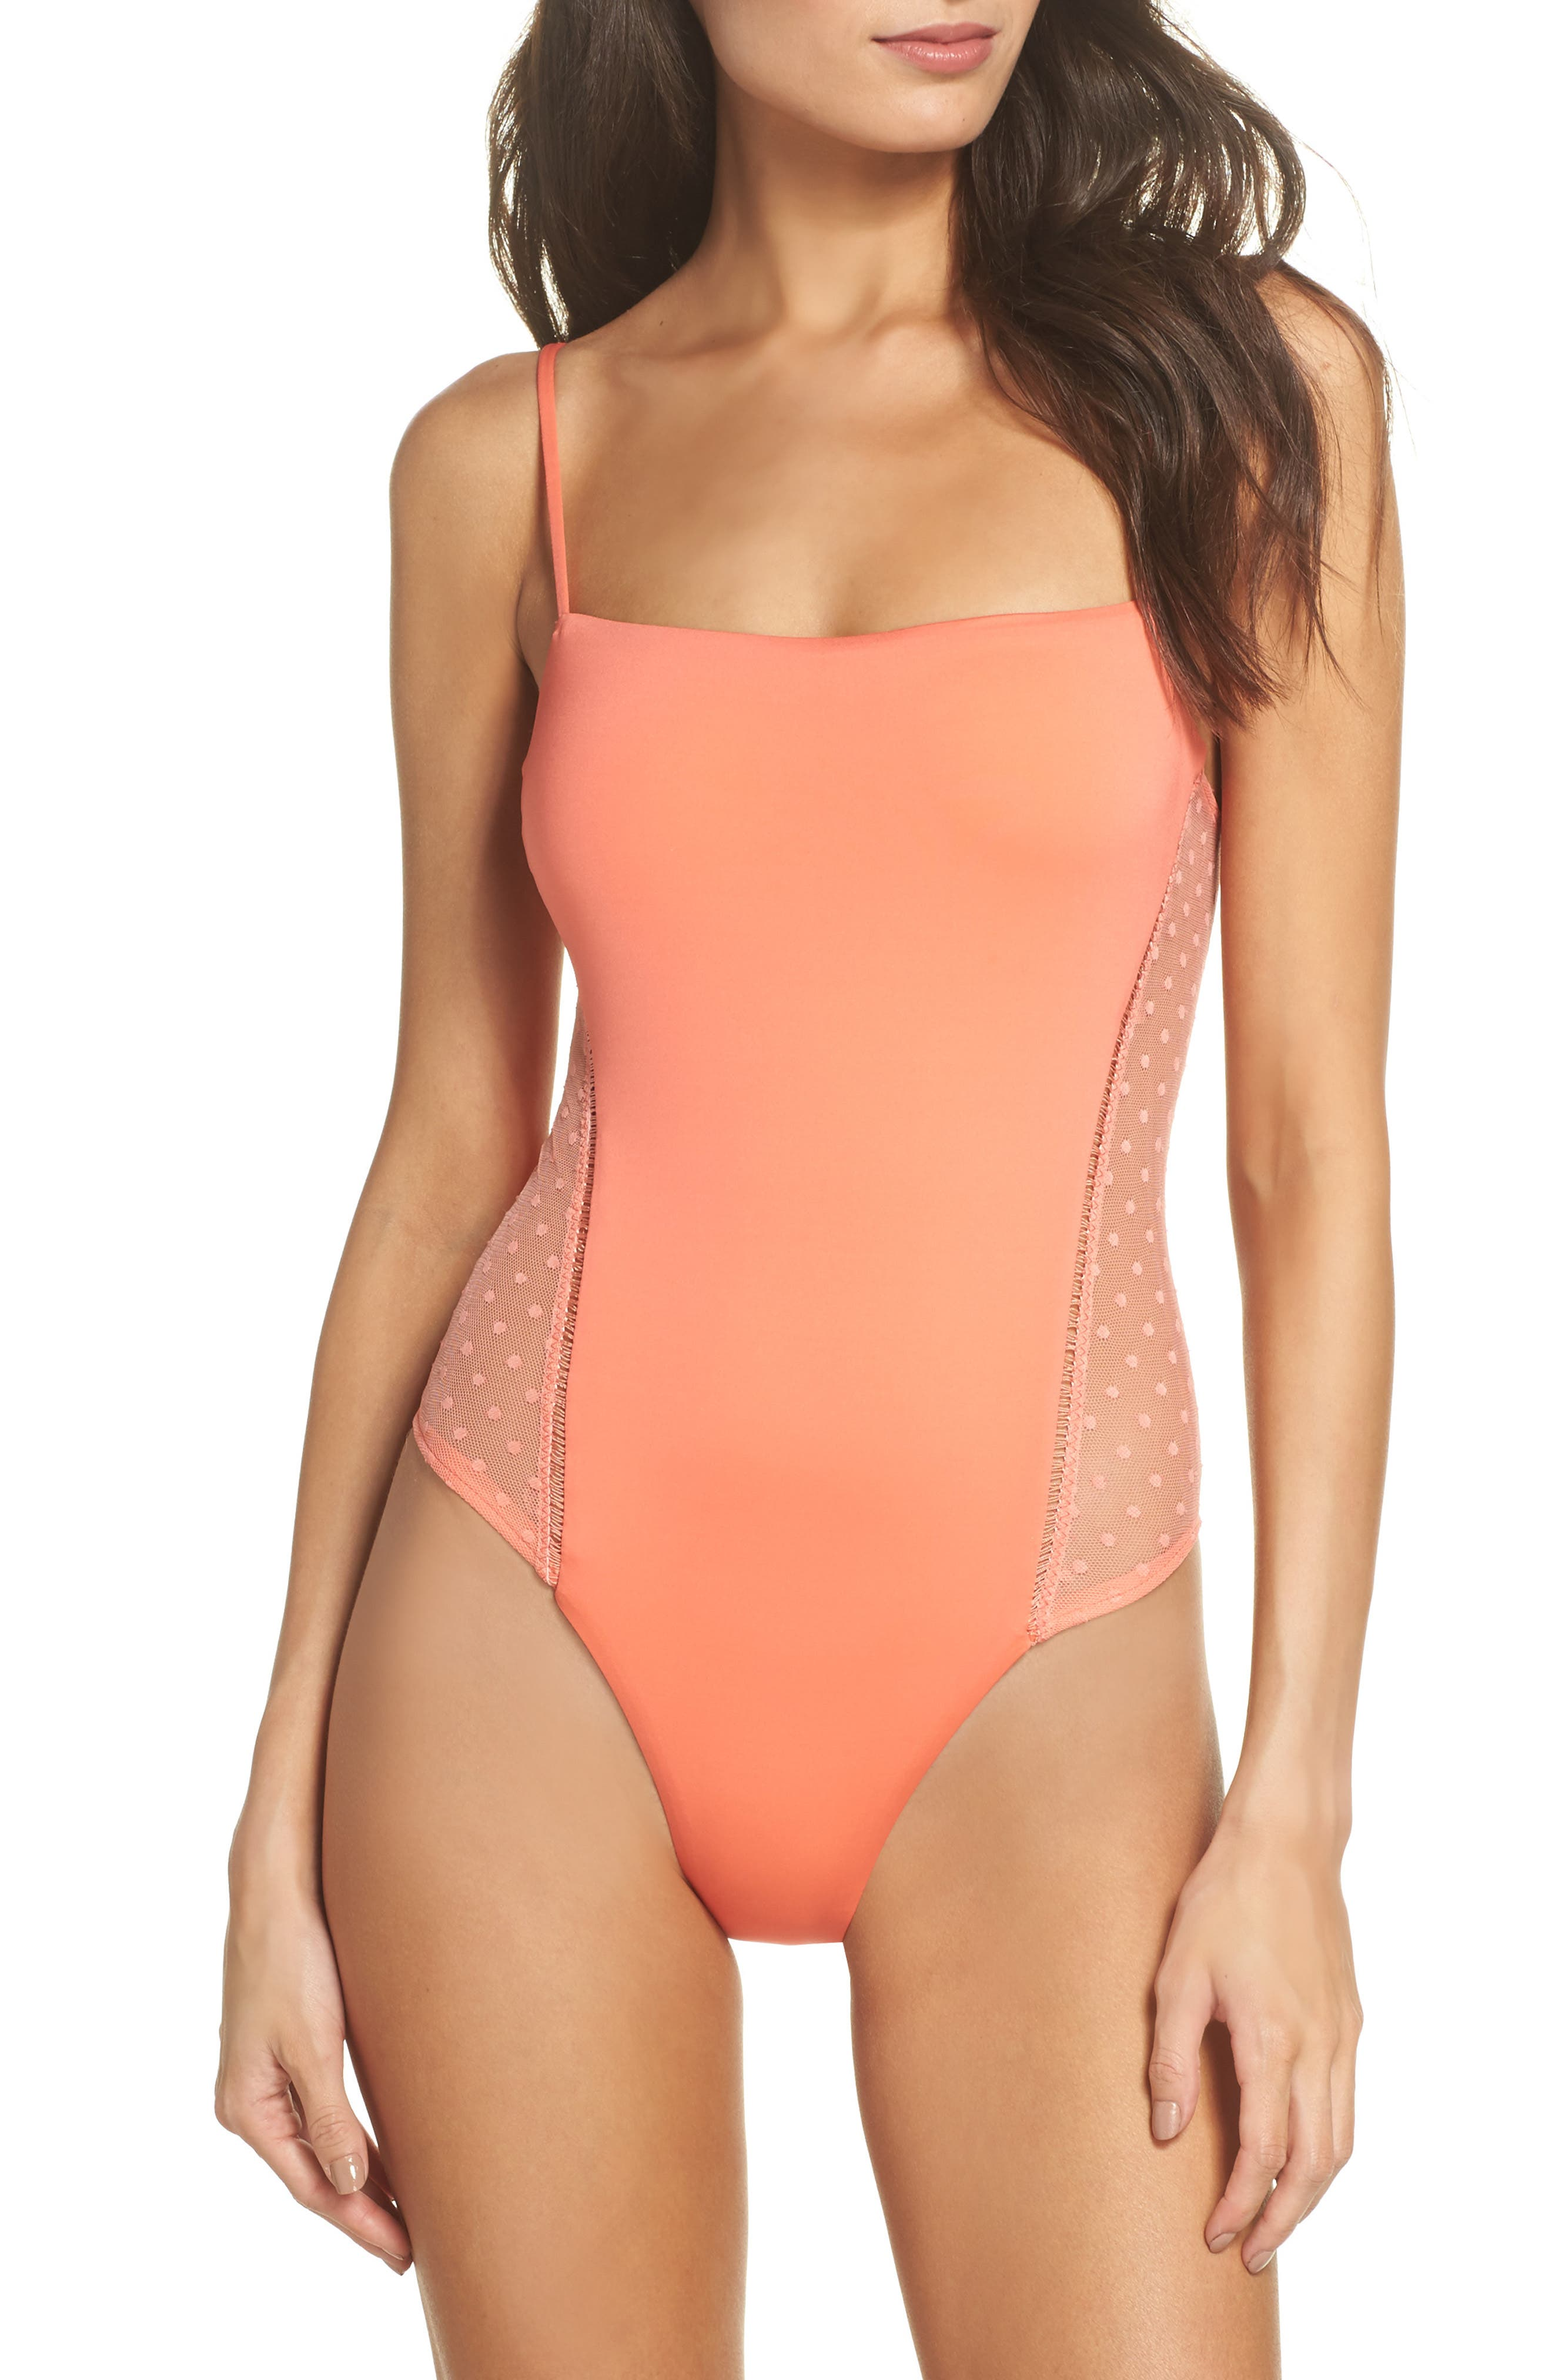 Swiss Miss One-Piece Swimsuit,                             Main thumbnail 1, color,                             Persimmon